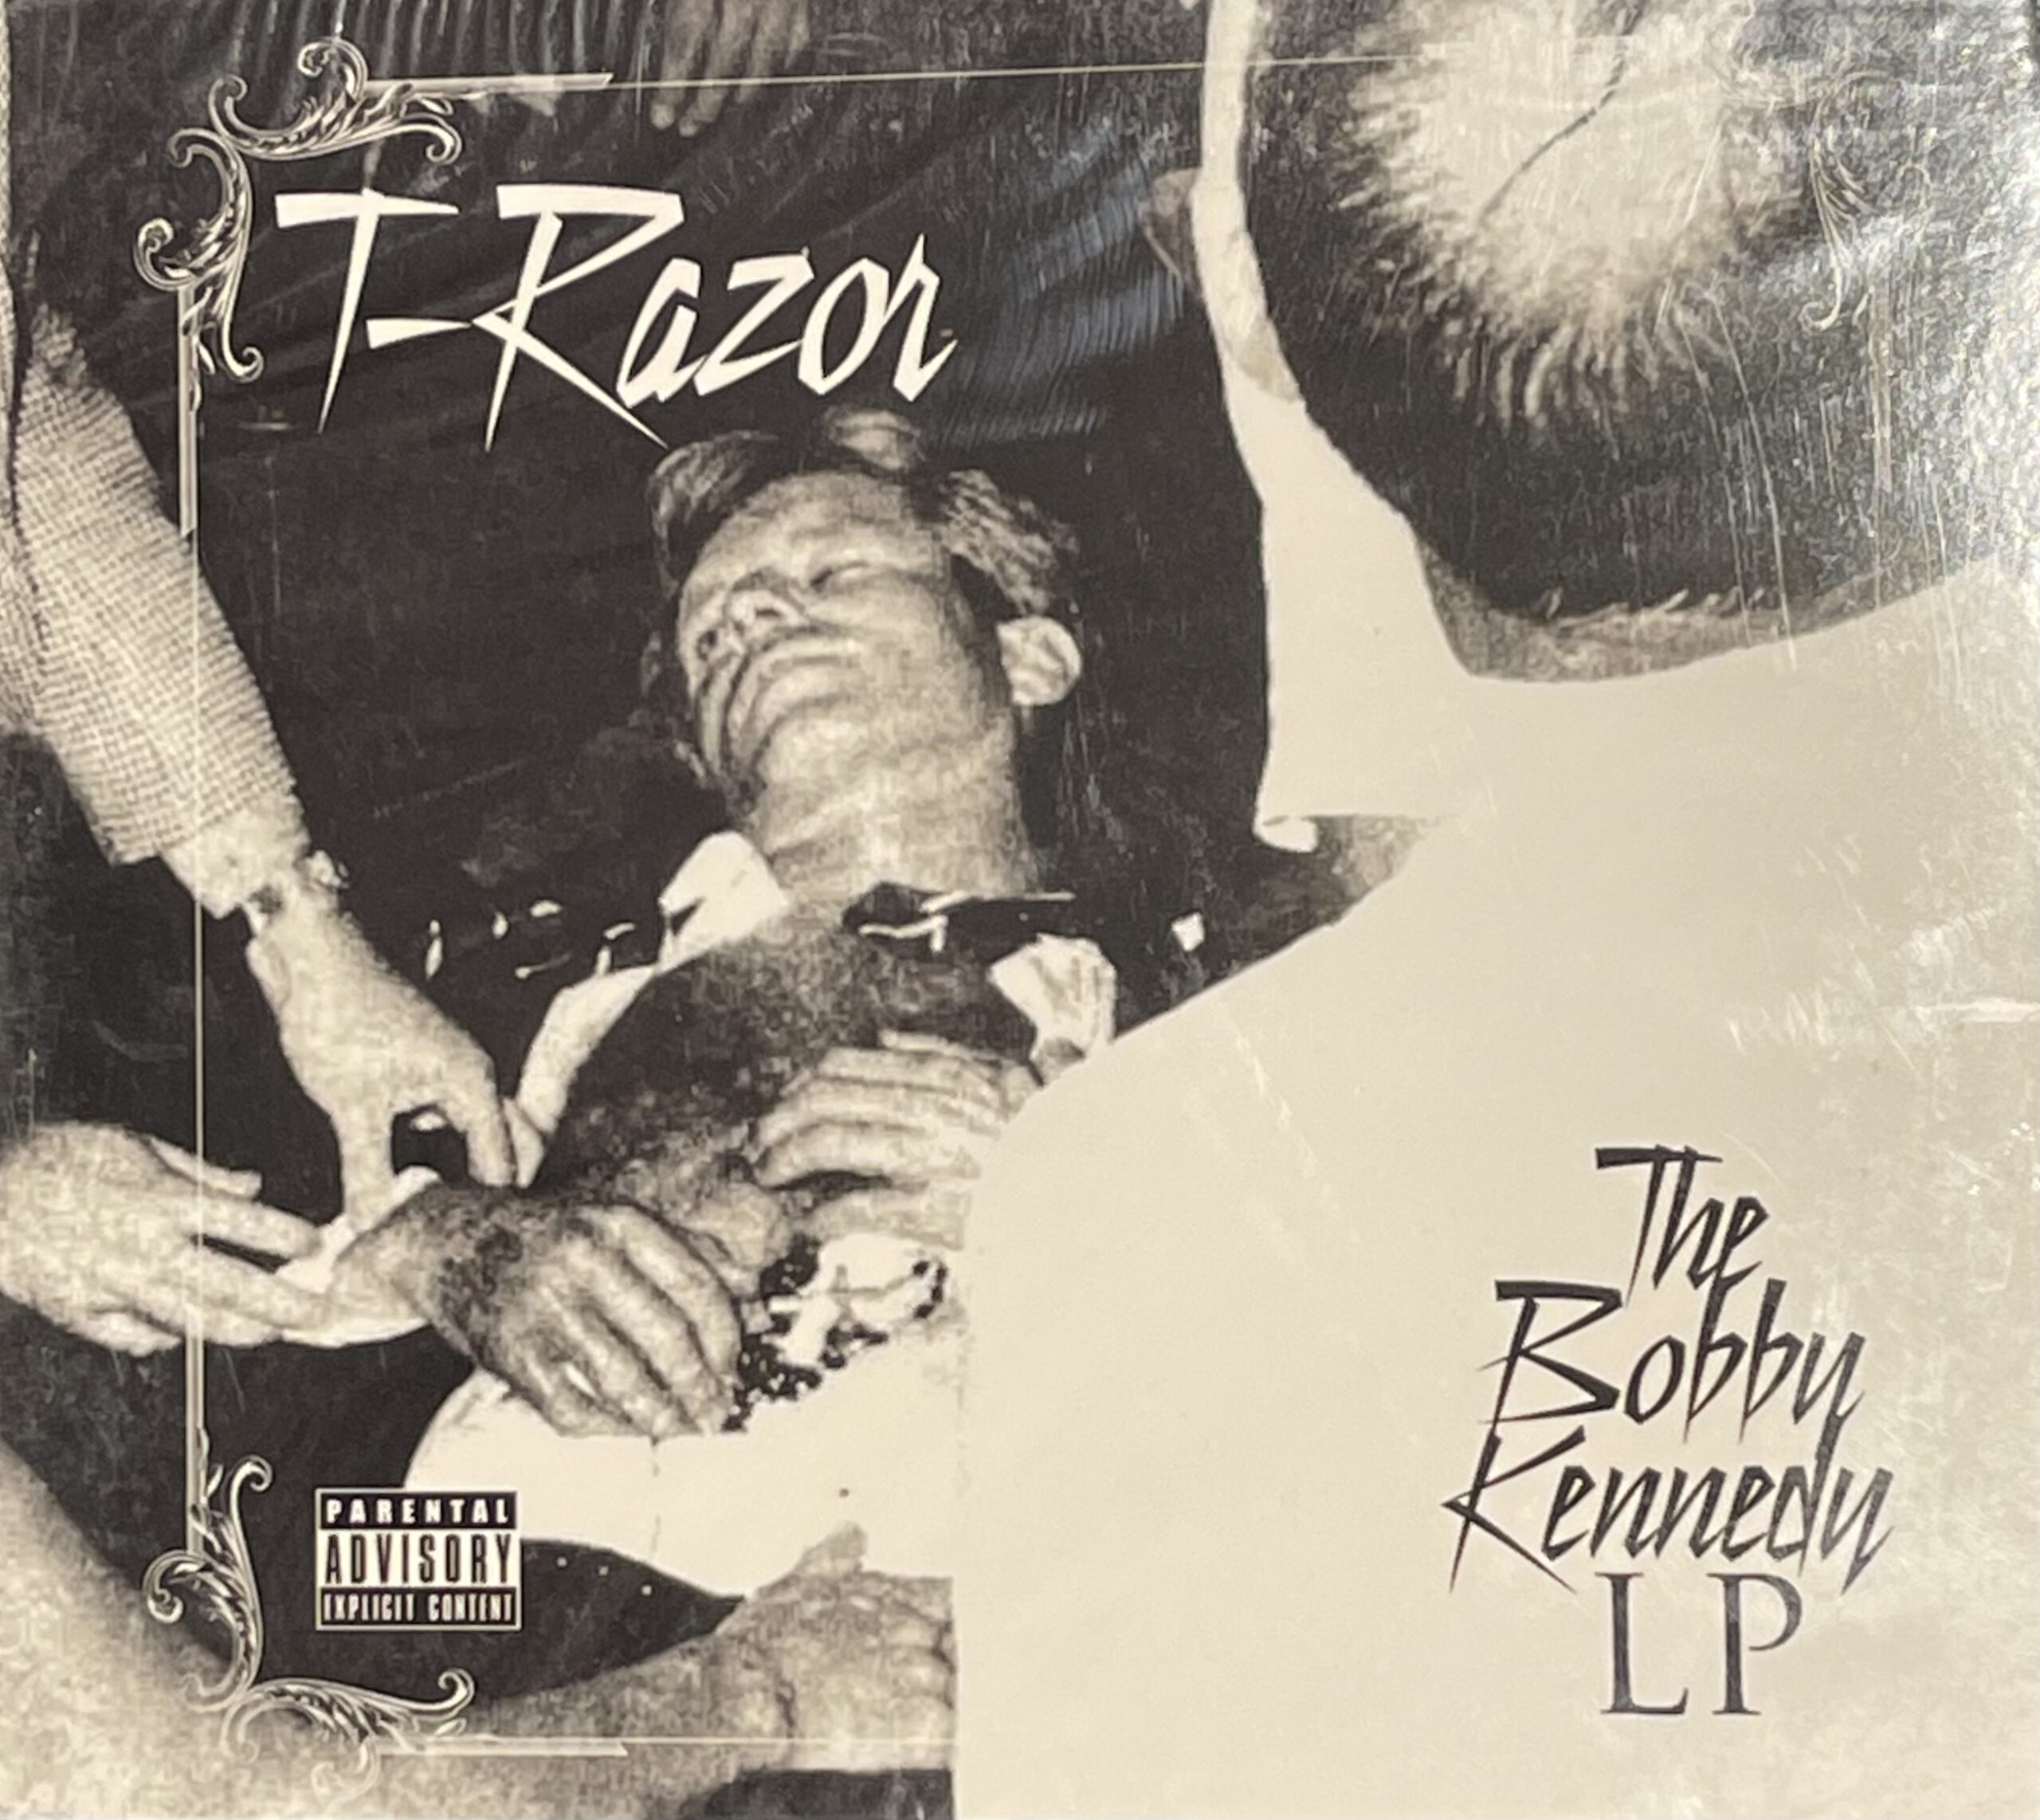 """T-Tazor """"The Bobby Kennedy Project"""" CD (21 Copies Left!)"""